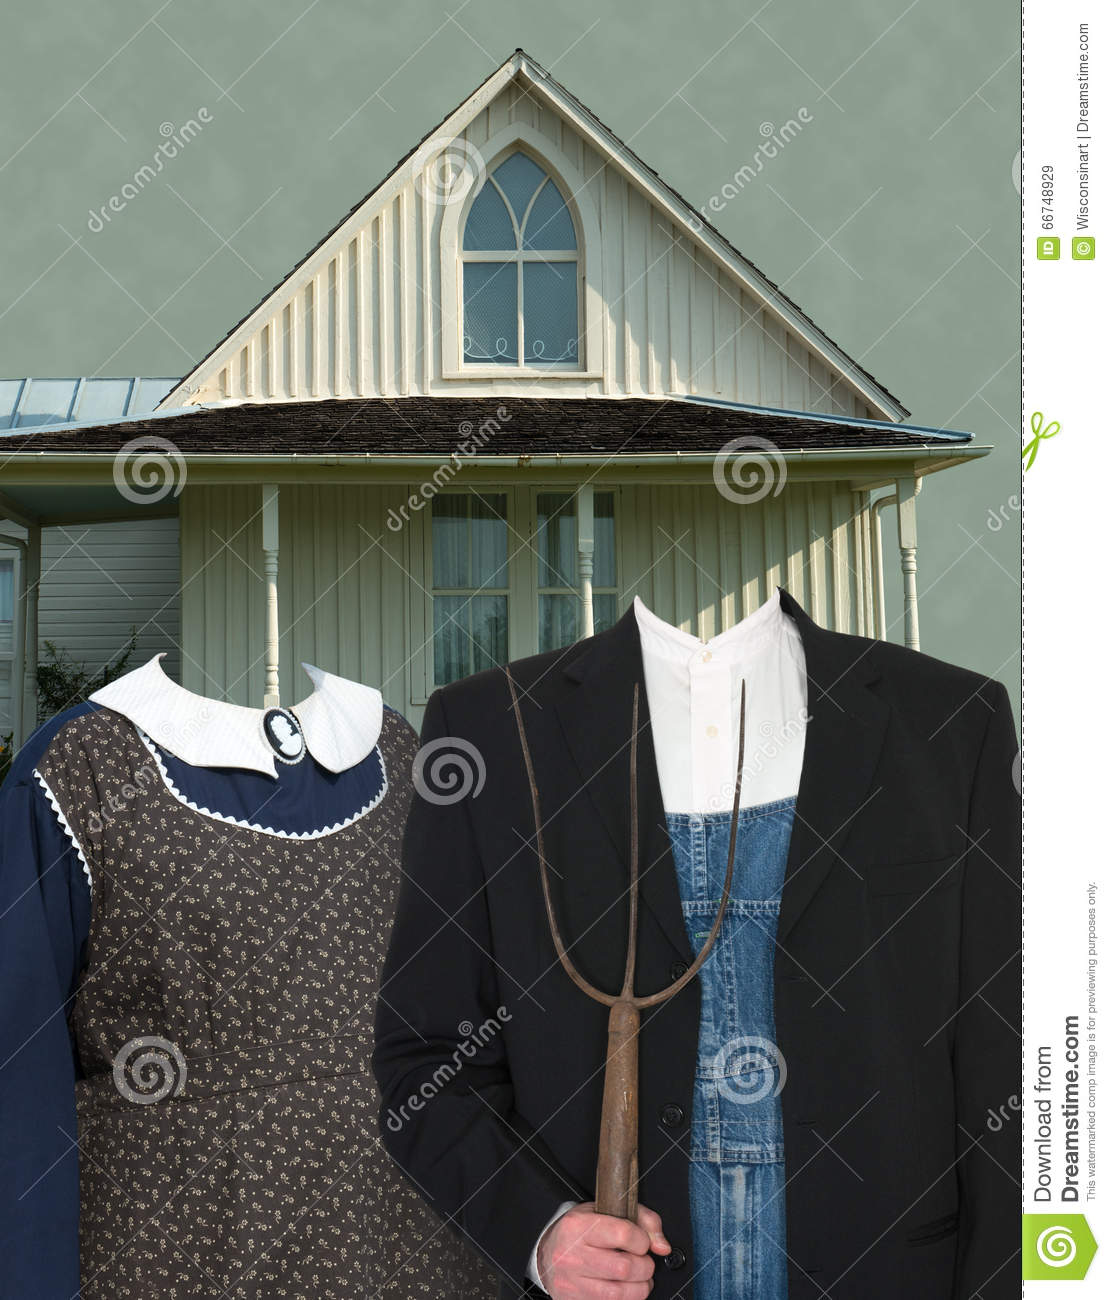 American Gothic Painting Spoof Template Stock Image